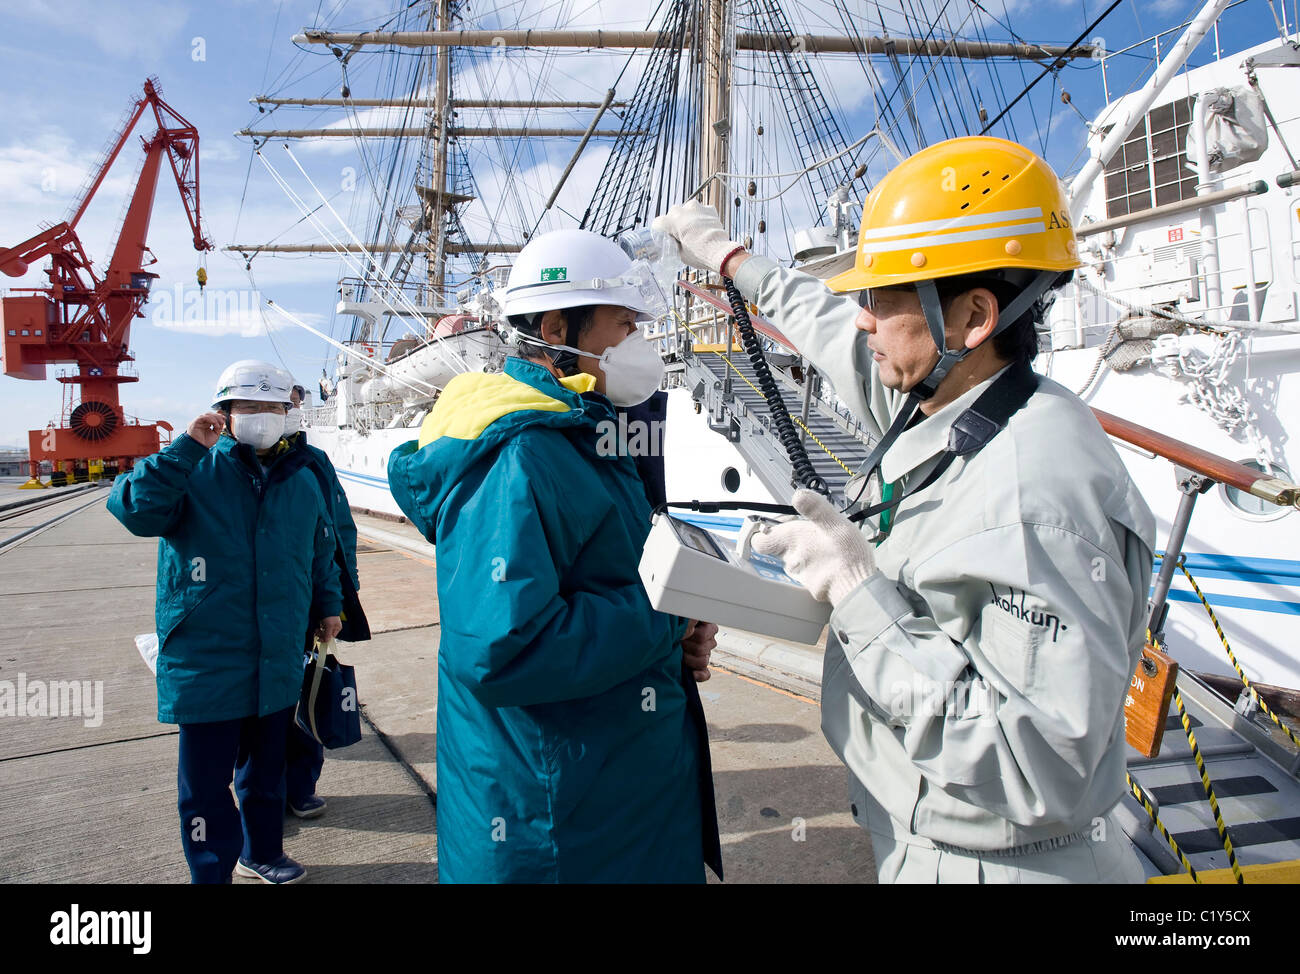 Staff involved with delivering goods to the nuclear power plants are given a radiation check prior to boarding the - Stock Image